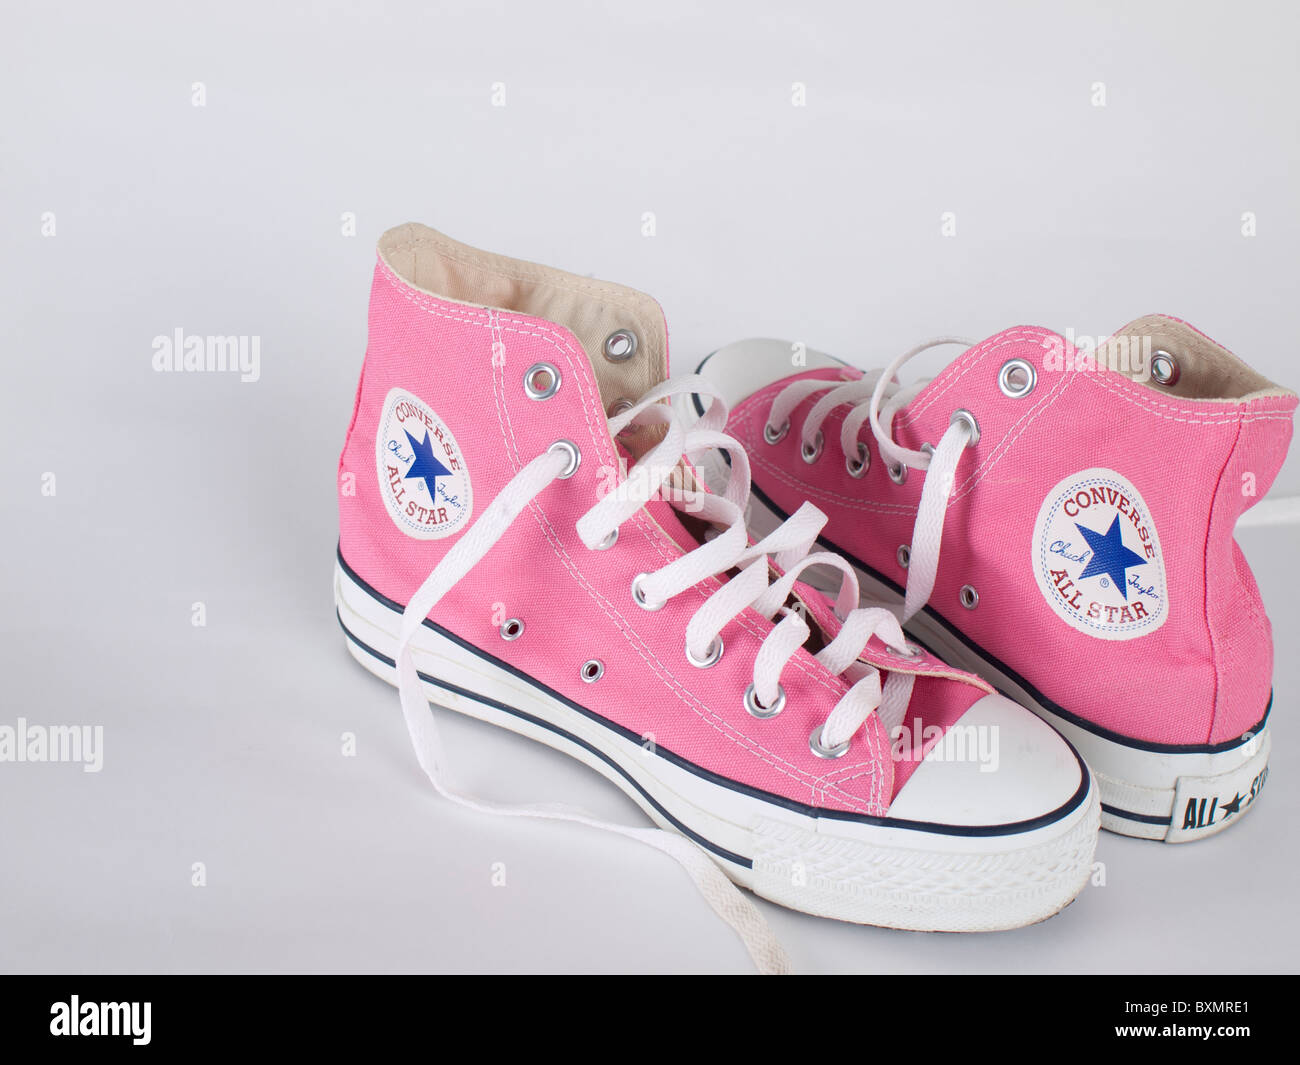 Pink Converse High Resolution Stock Photography and Images - Alamy